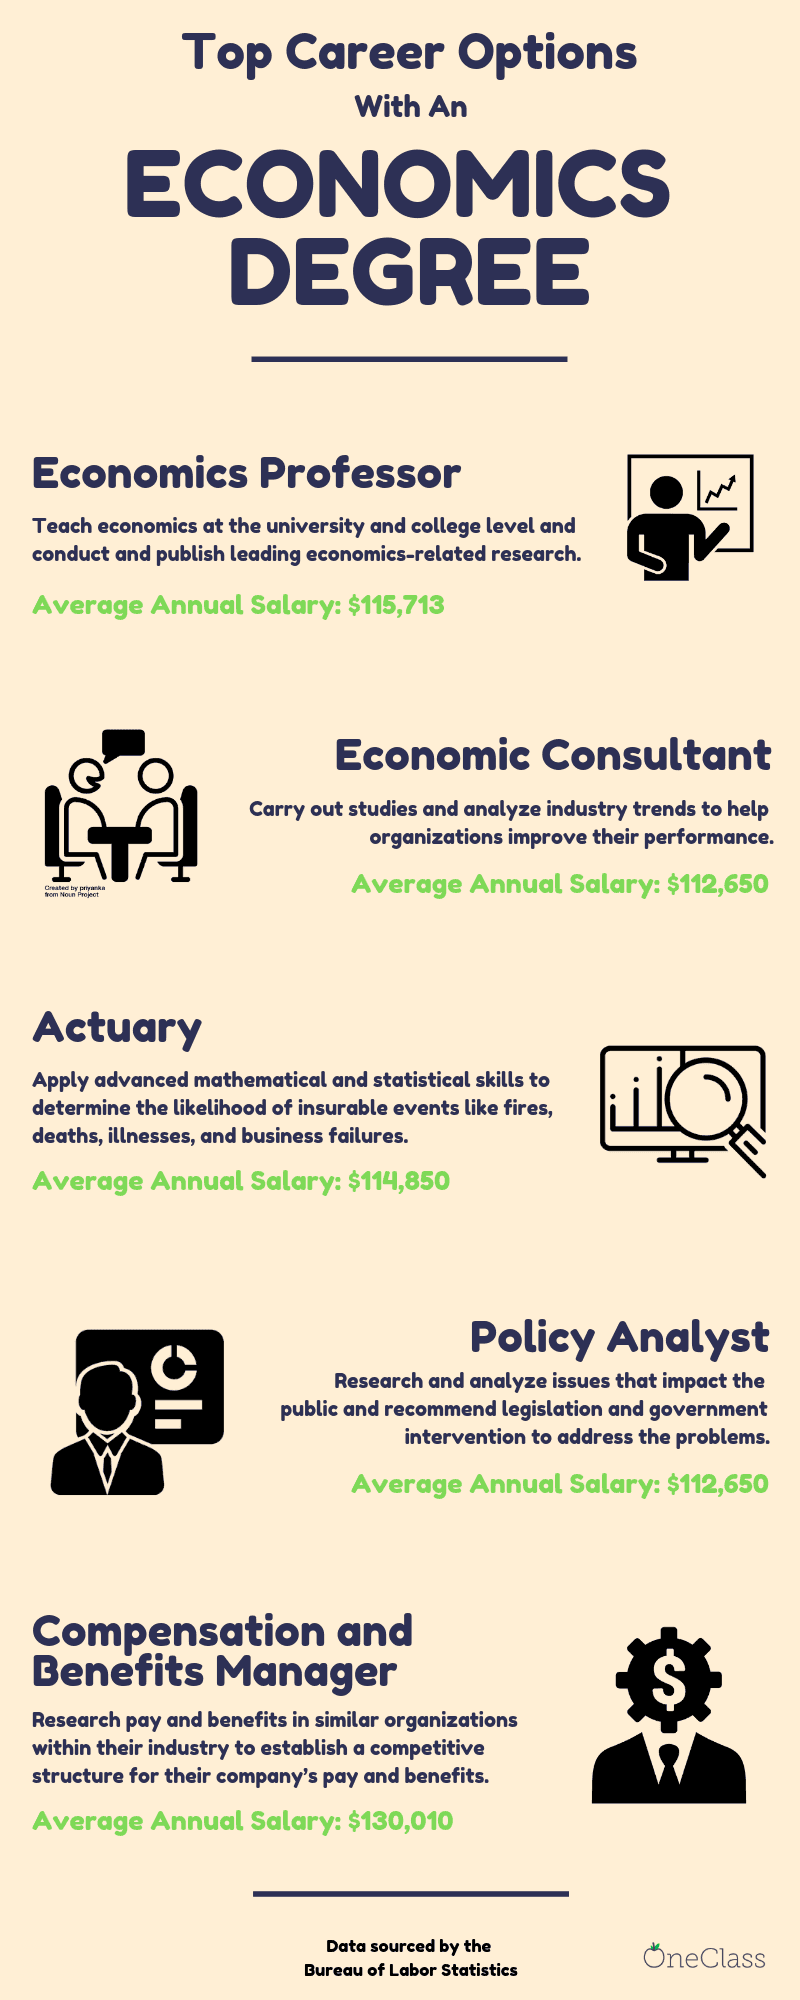 infographic showing the top 5 career options with an economics degree. The options are economics professor, economic consultant, actuary, policy analyst, and compensation and benefits manager.